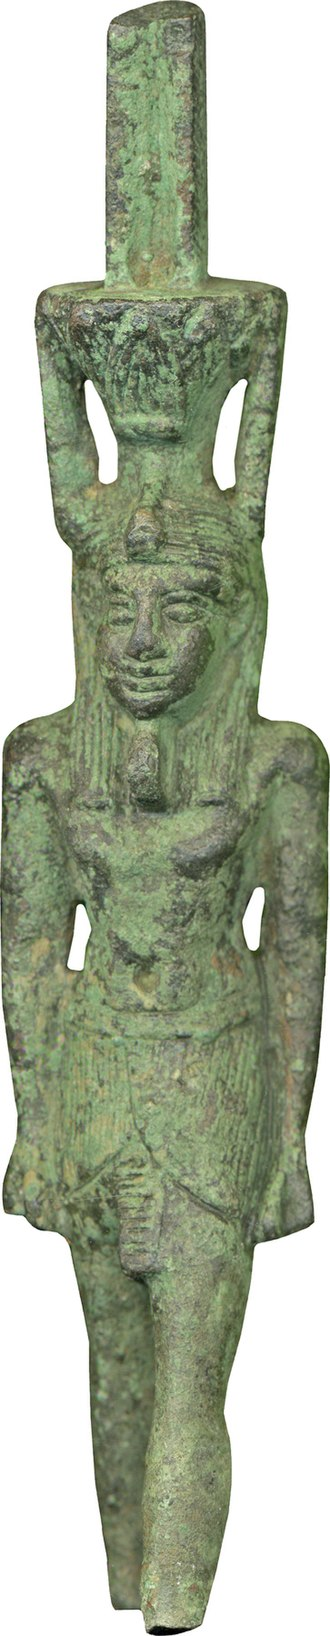 Memphis, Egypt - This ritualistic object depicts the god Nefertem, who was mainly worshipped in Memphis. The Walters Art Museum.